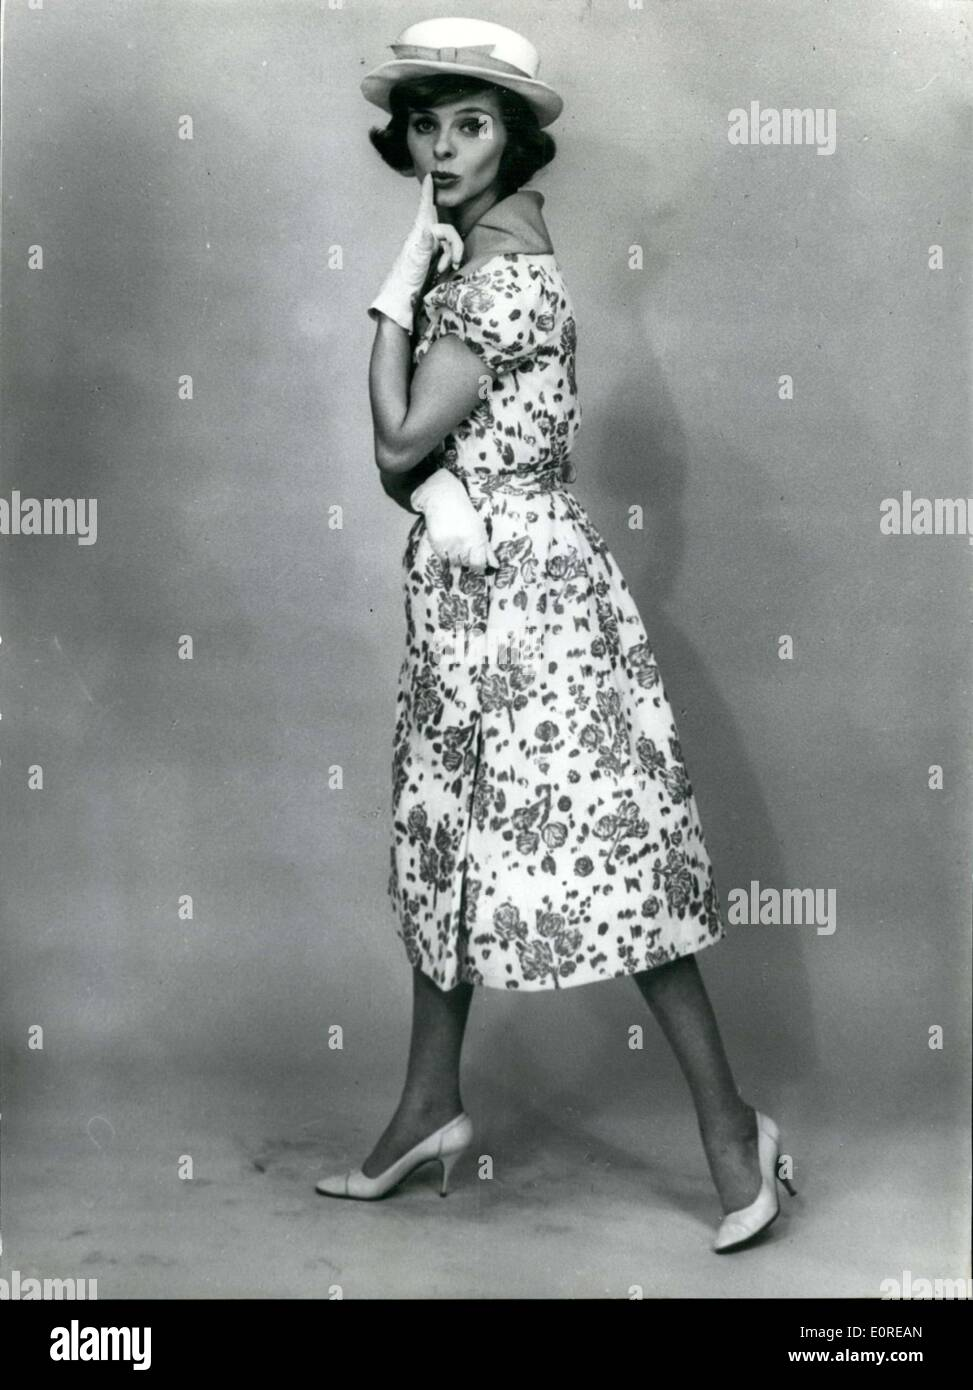 Feb. 21, 1959 - Picnic a summer dress for hot days: This summer model dress by Carven named Picnic is made of light brown printed cotton Natte and belongs to the new summer and spring fashion 1959. - Stock Image